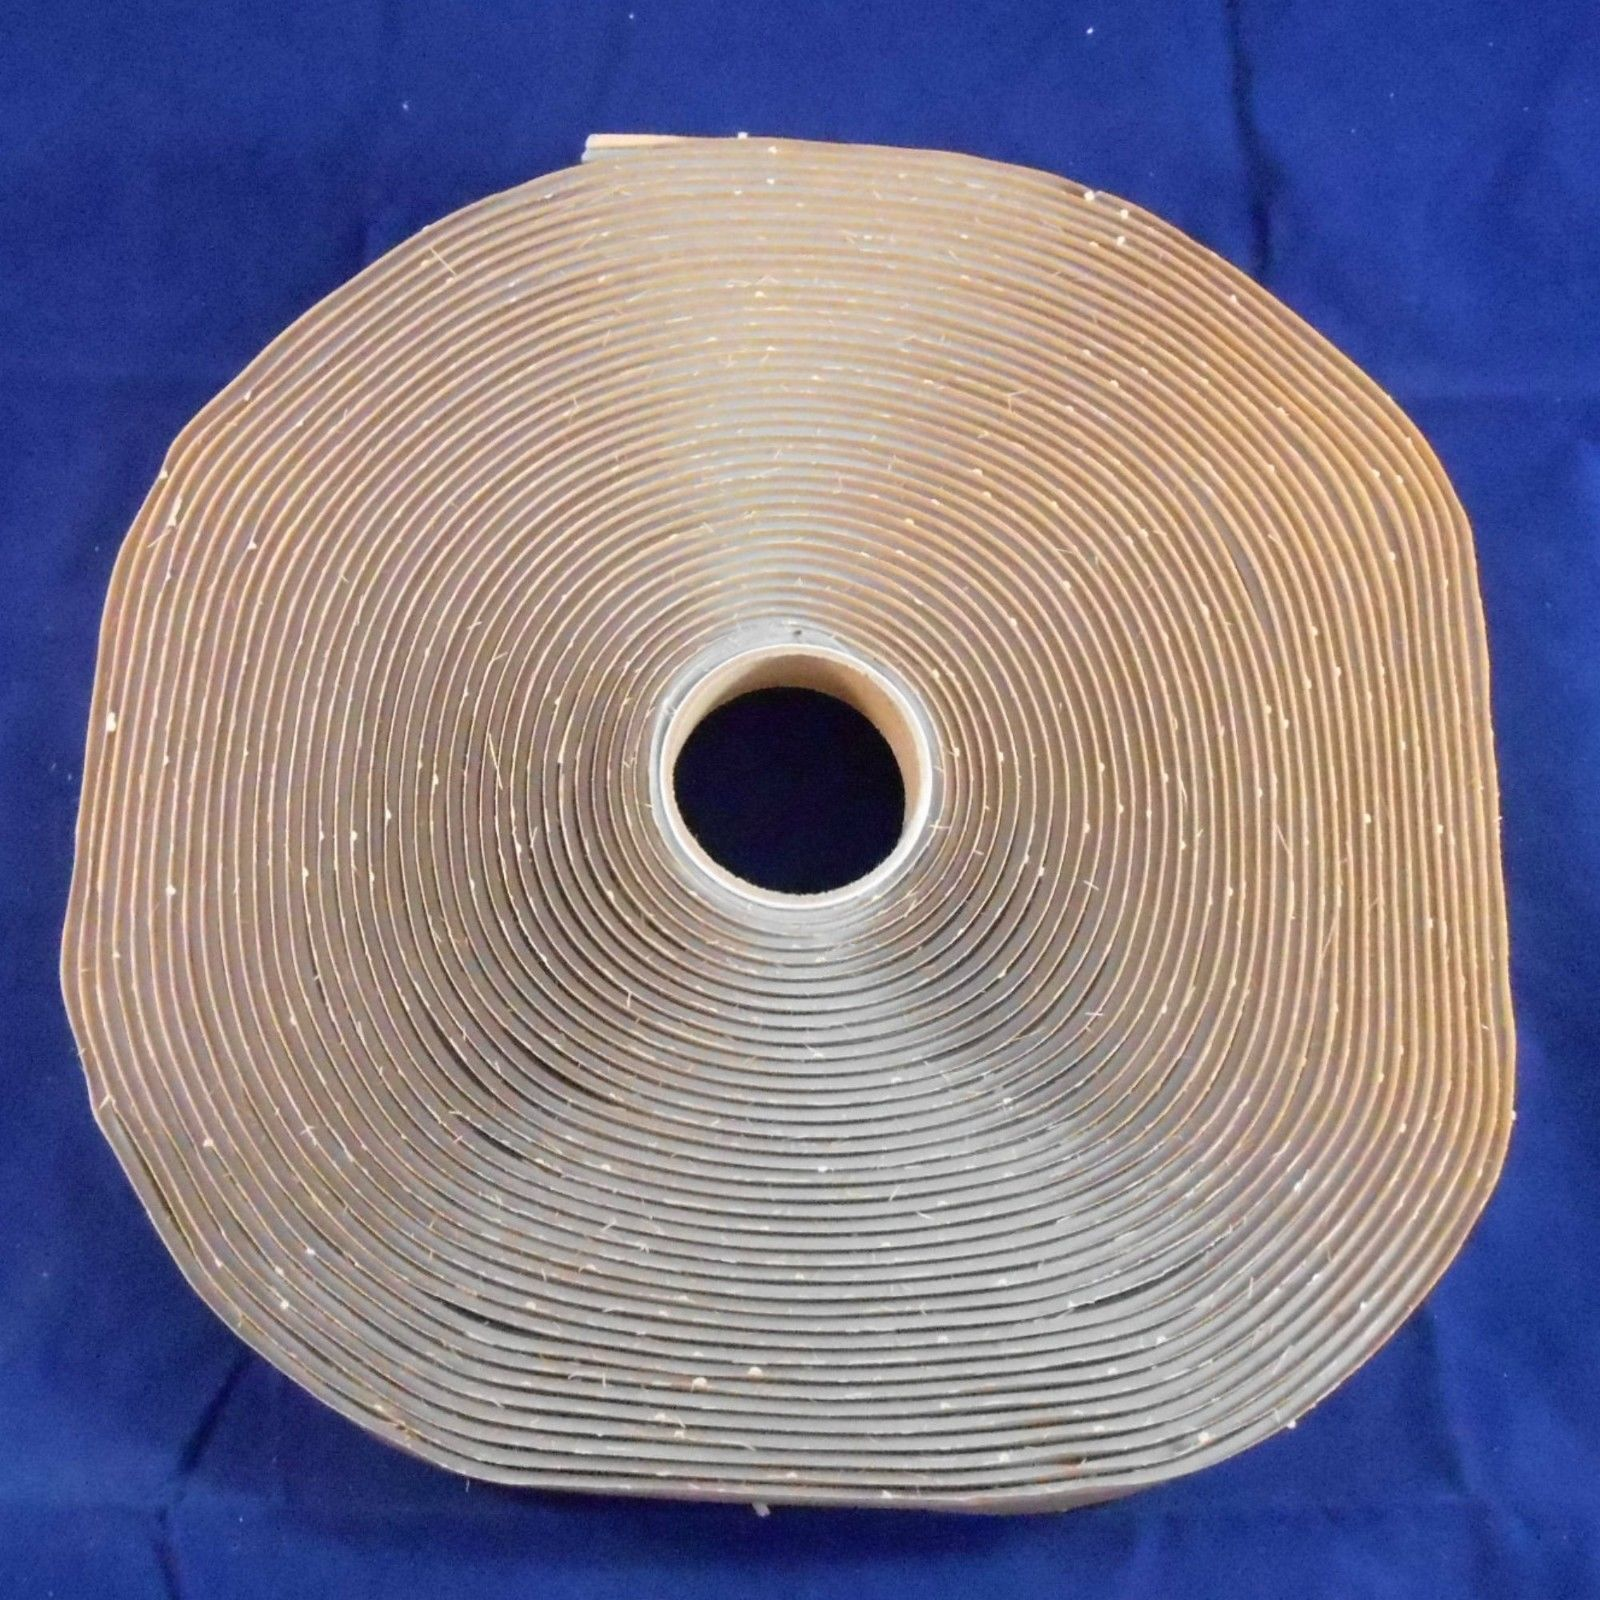 1/2inX45ft Gray Butyl Tape Roll (12.7mmx13,716mm) Qty: 1 Roll or 7 Rolls Building & Hardware